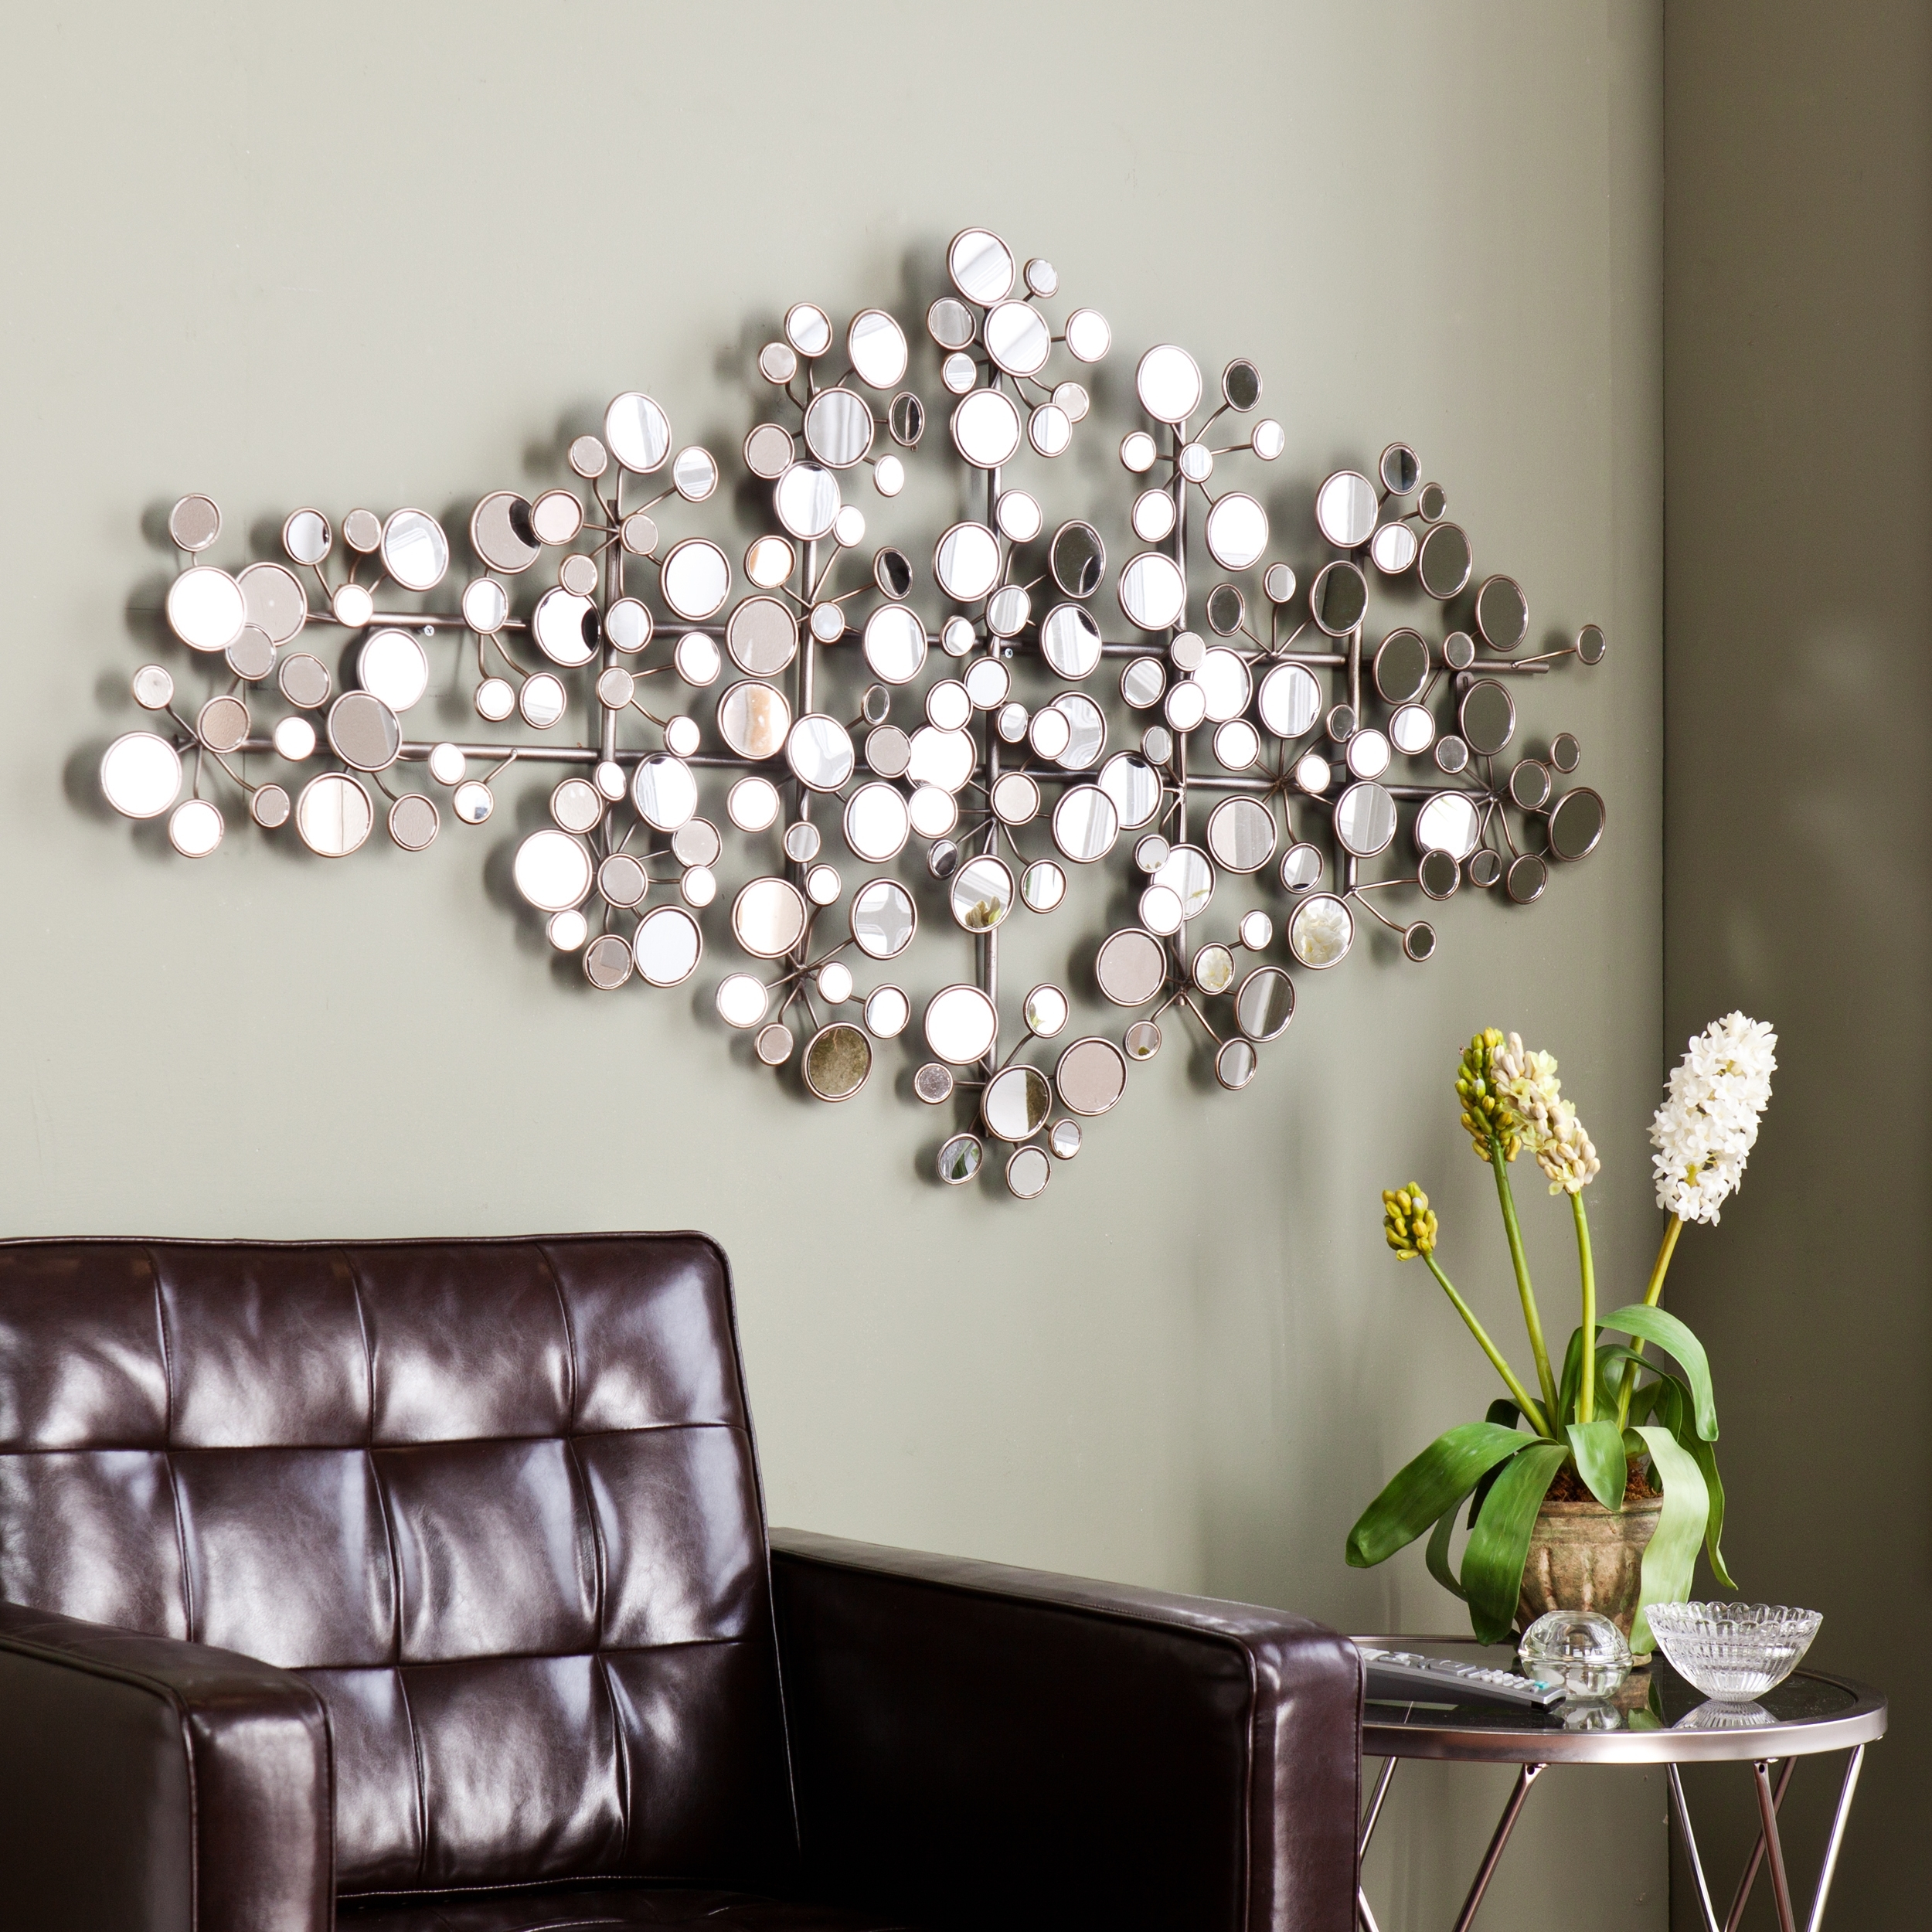 Recent This Upton Home Olivia Mirrored Metal Wall Sculpture Features A Within Modern Mirrored Wall Art (Gallery 12 of 15)